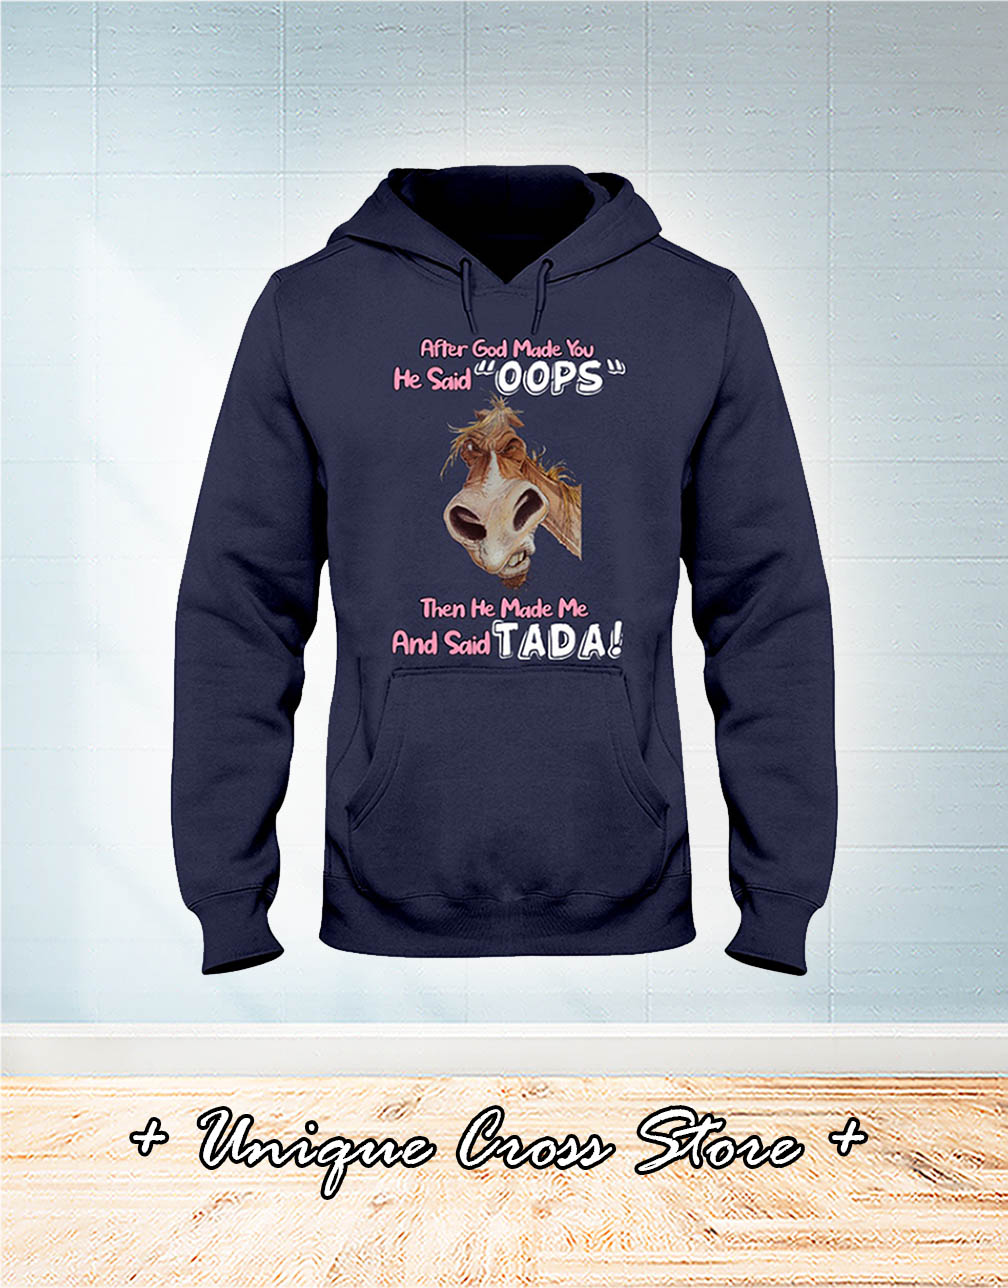 Horse After God Made You He Said Oops Then He Made Me And Said Tada hoodie